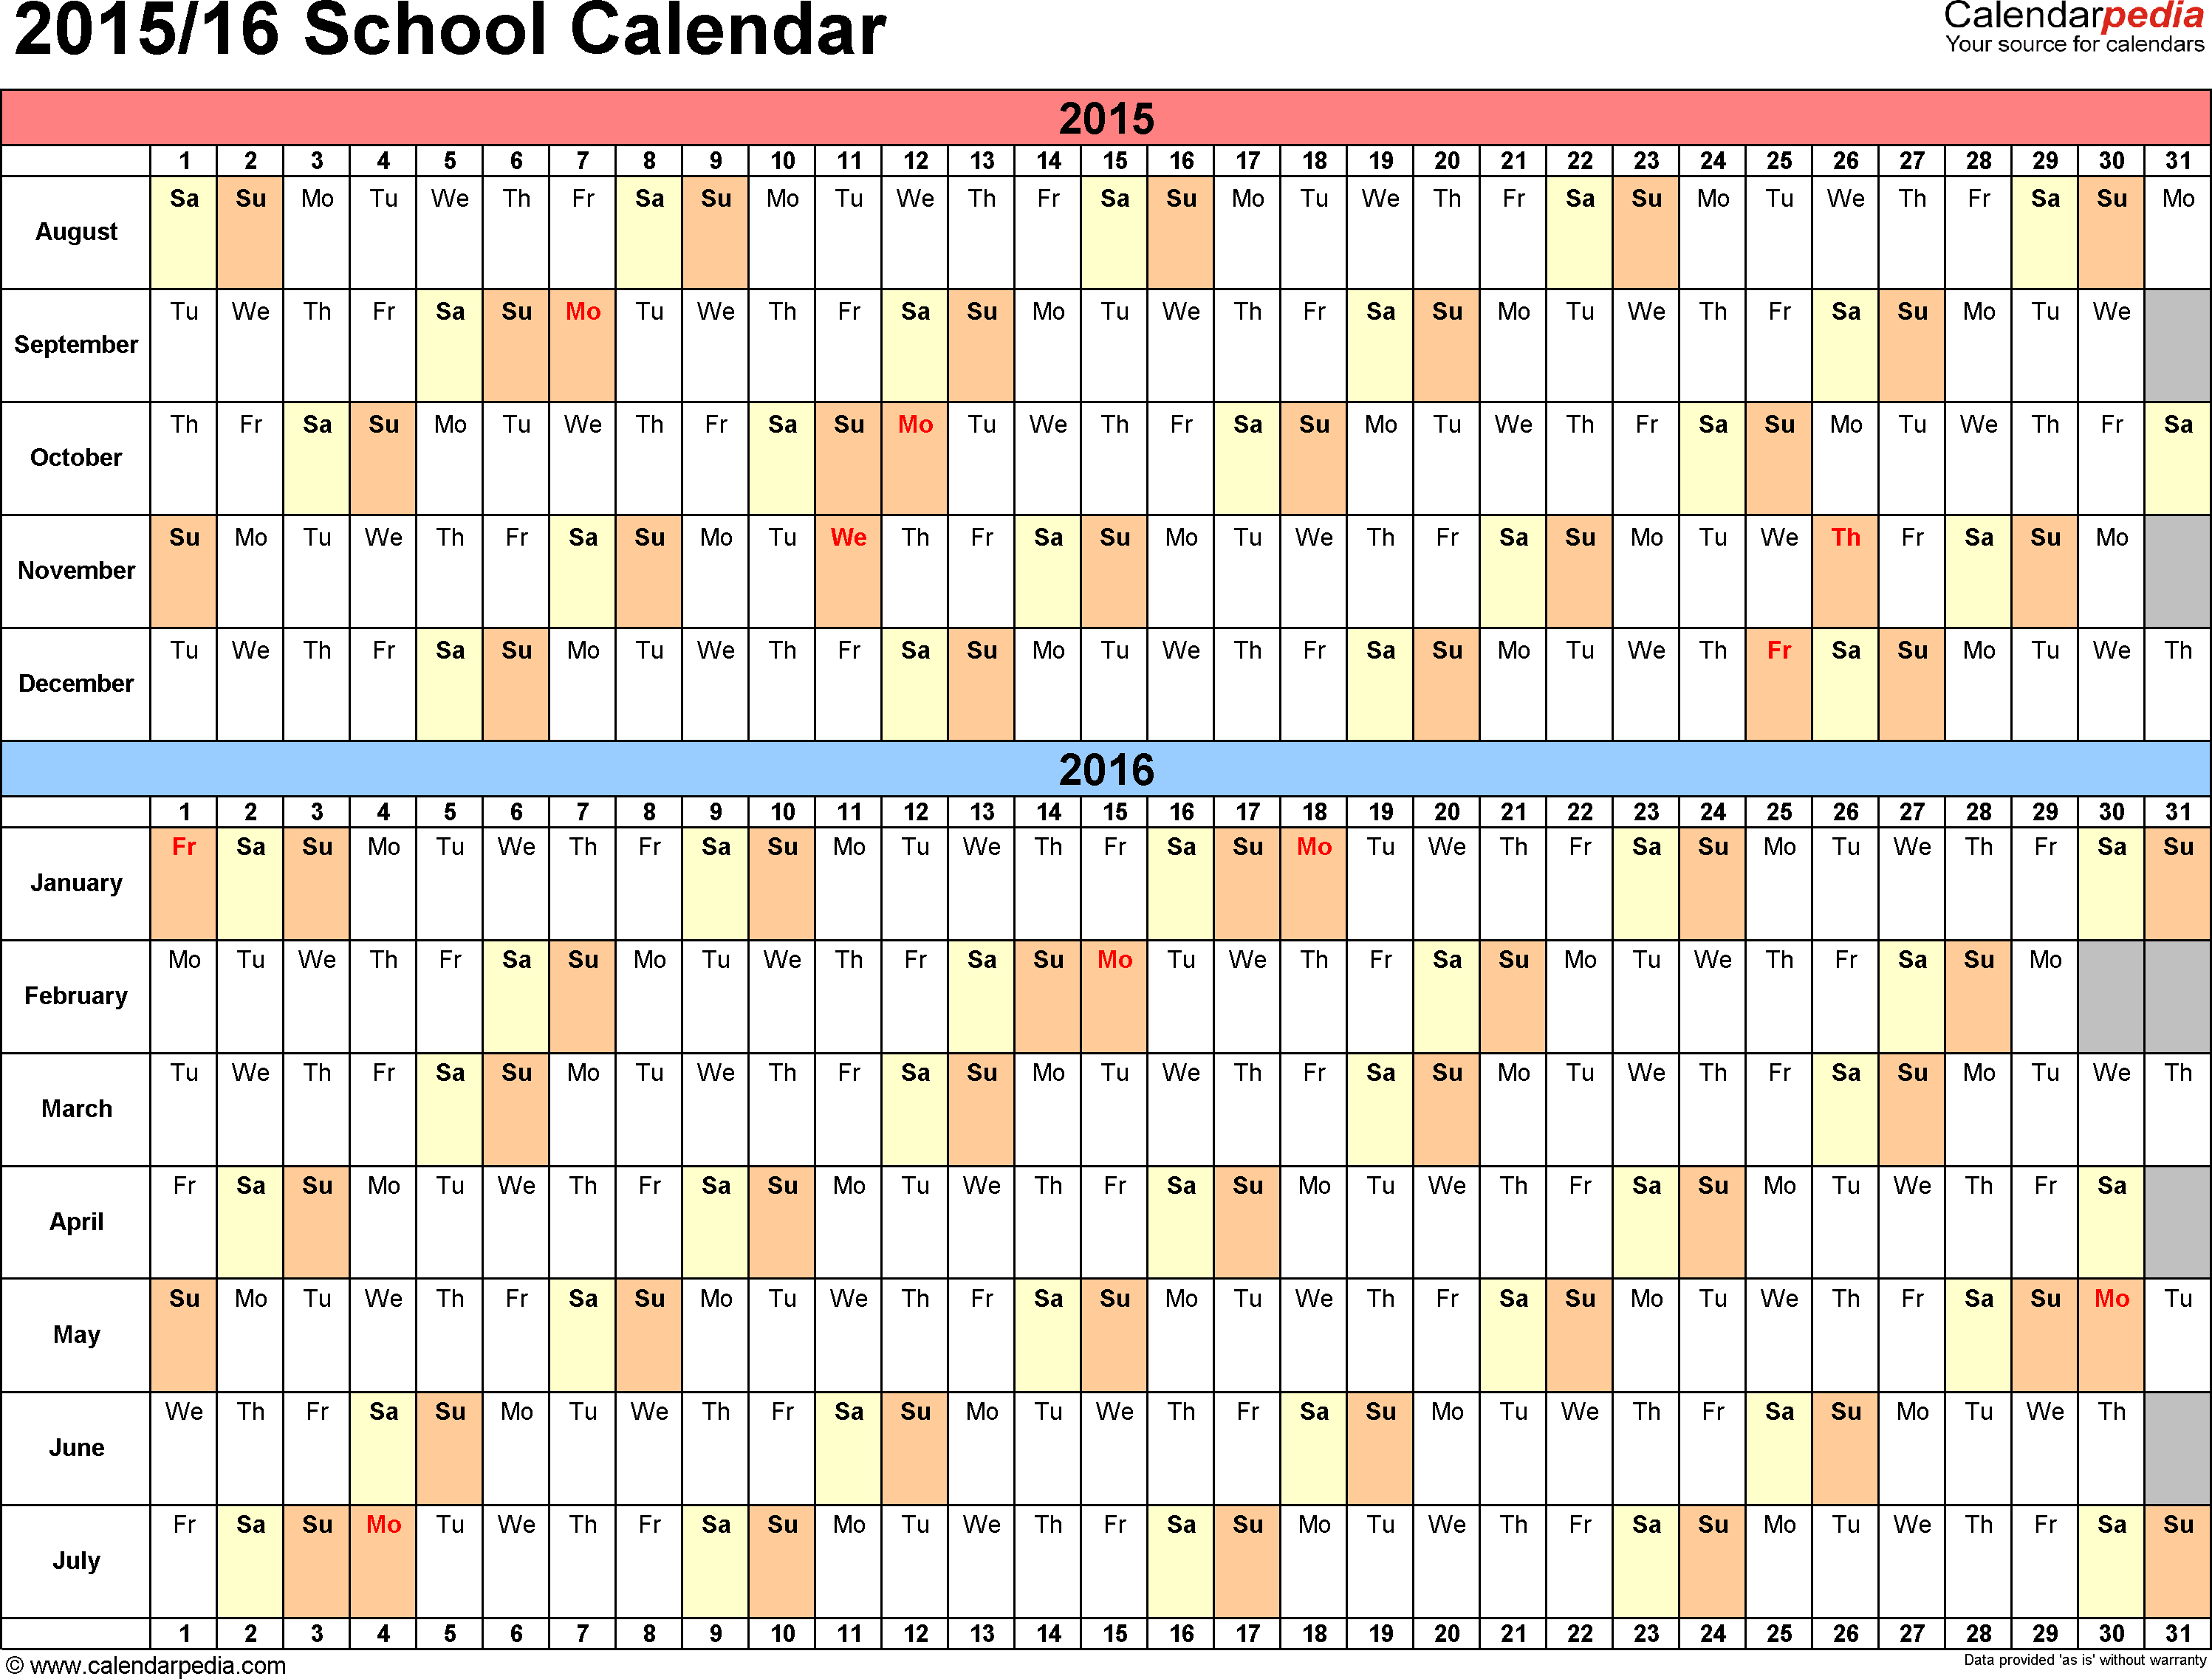 Download Template 3: School calendar 2015/16 for Microsoft Excel (.xlsx file), landscape, 1 page, linear